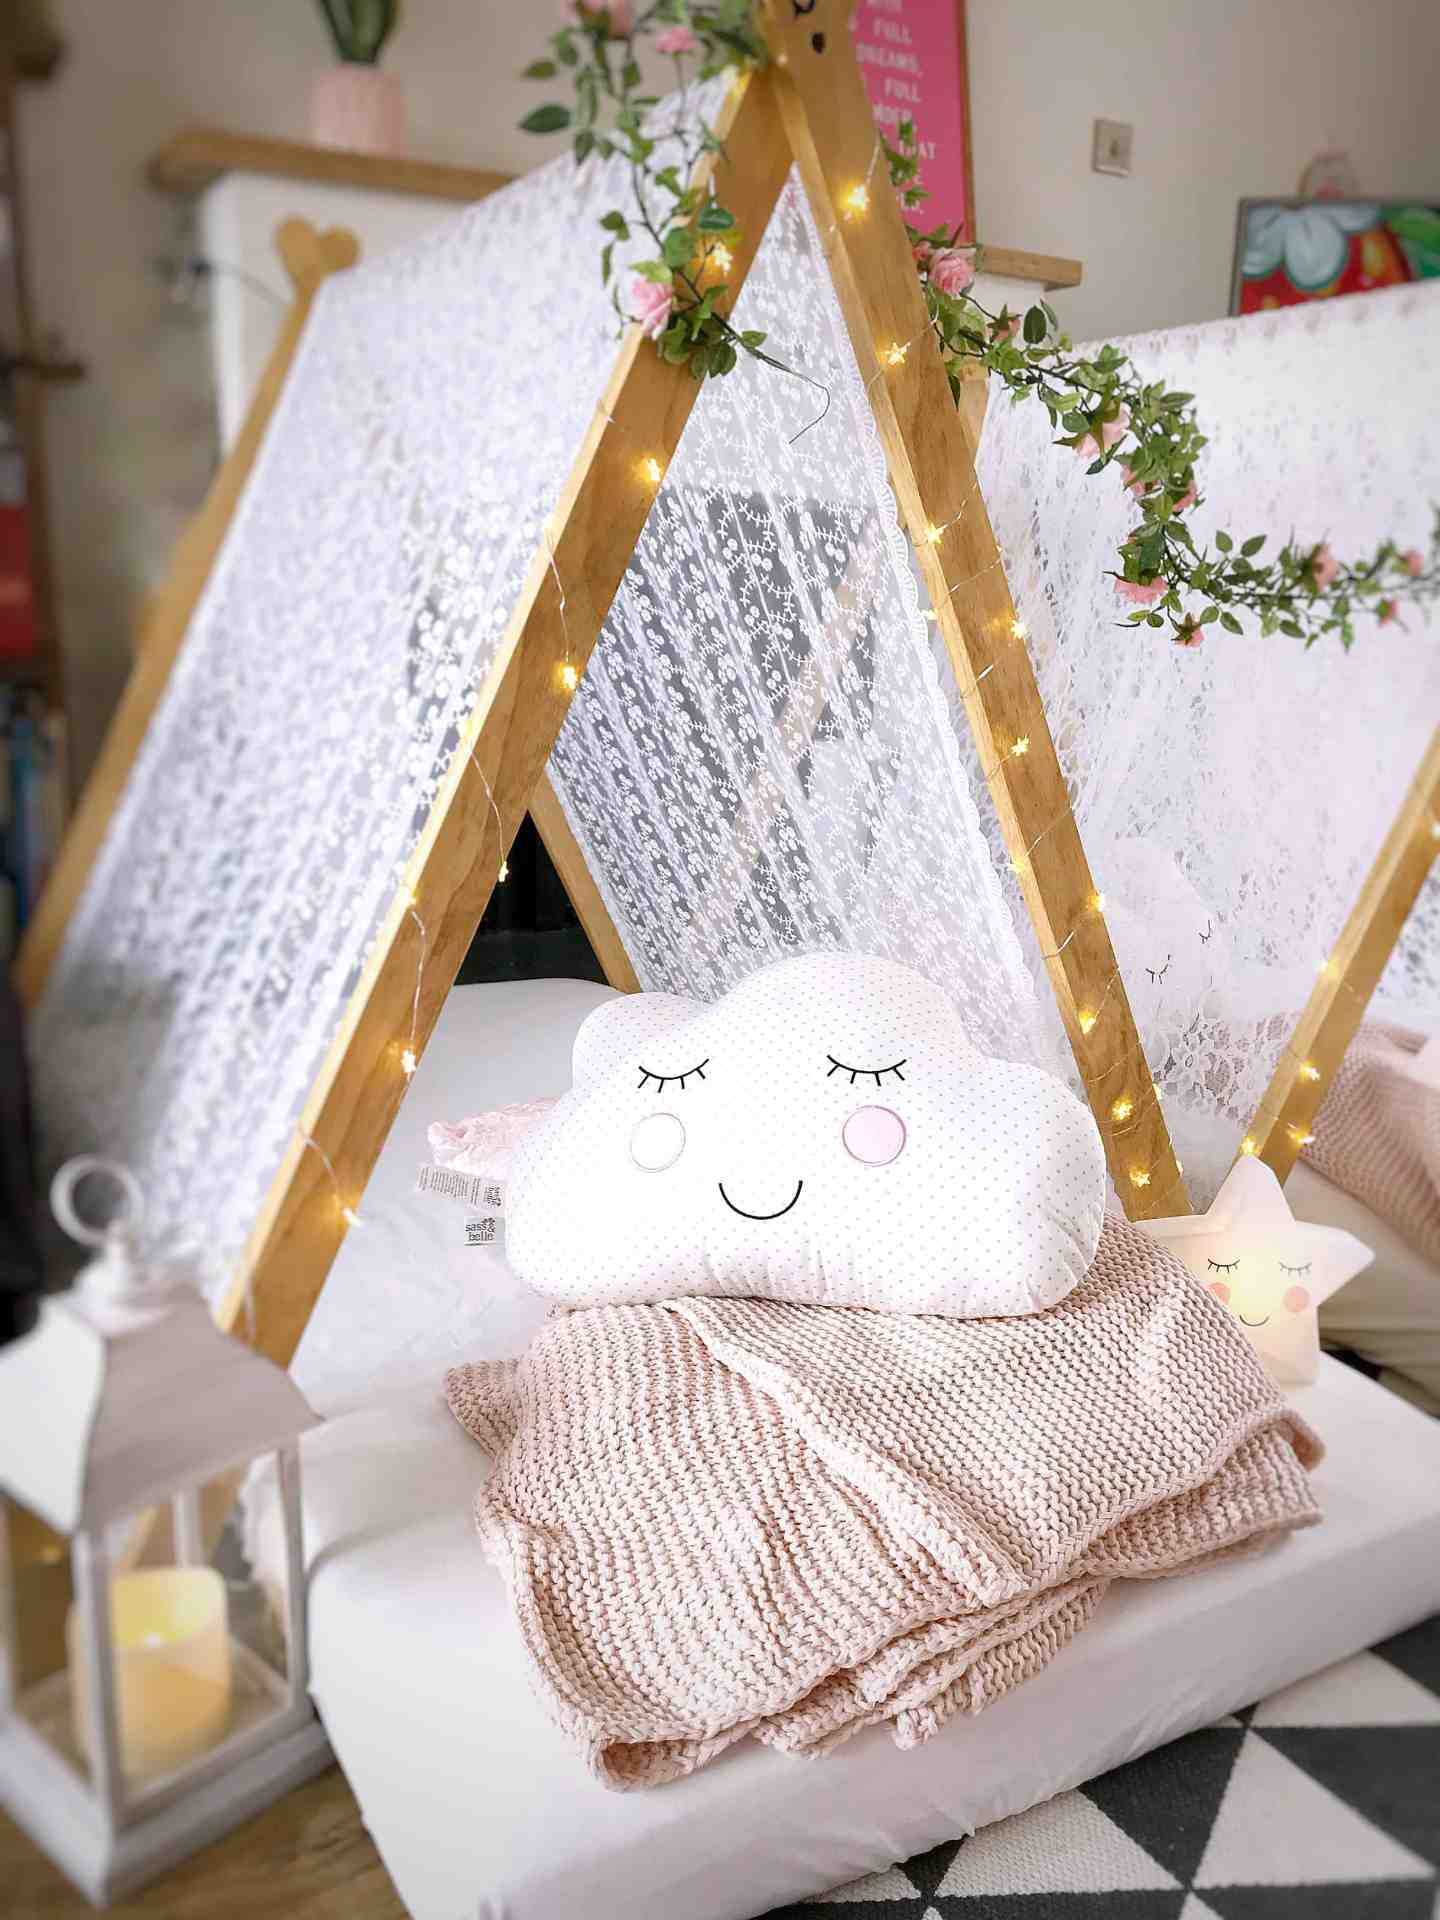 A cosy tent with lantern, pink blanket, cloud cushion and fair lights at our kids tee pee party